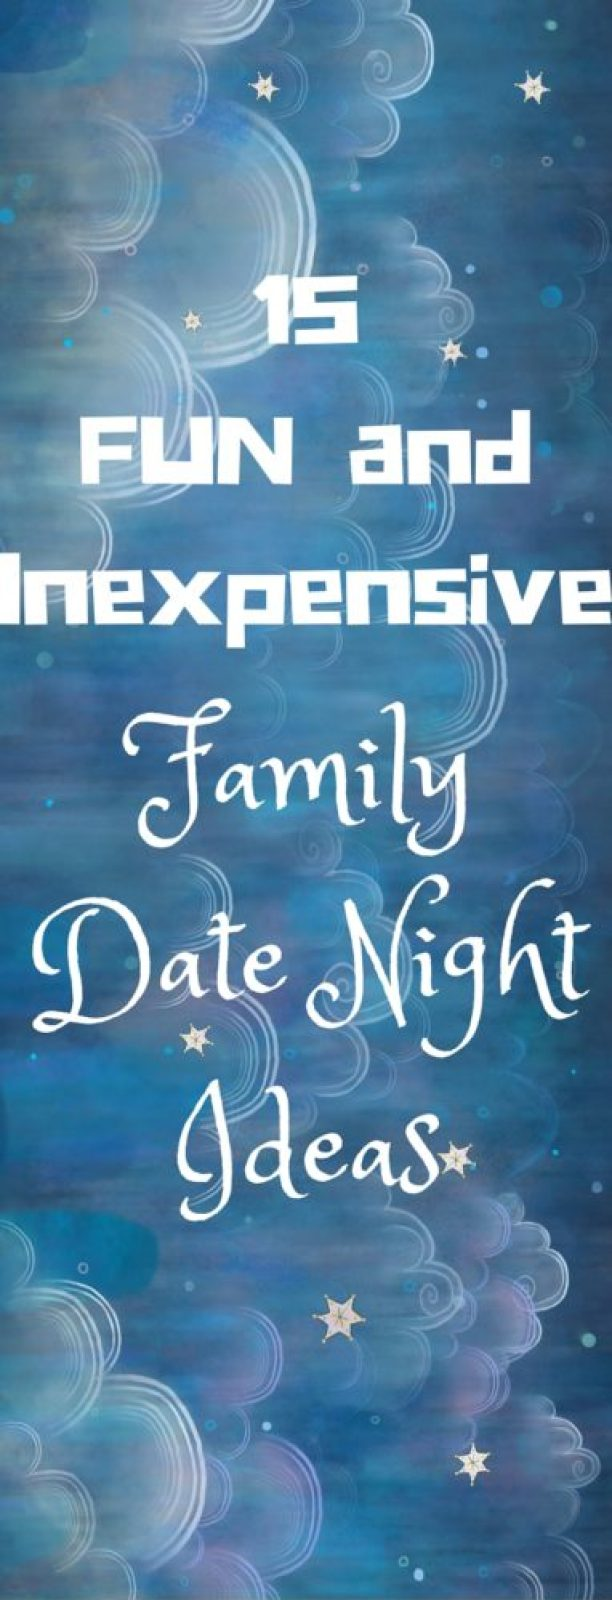 15 fun and inexpensive date night ideas the WHOLE family will LOVE!